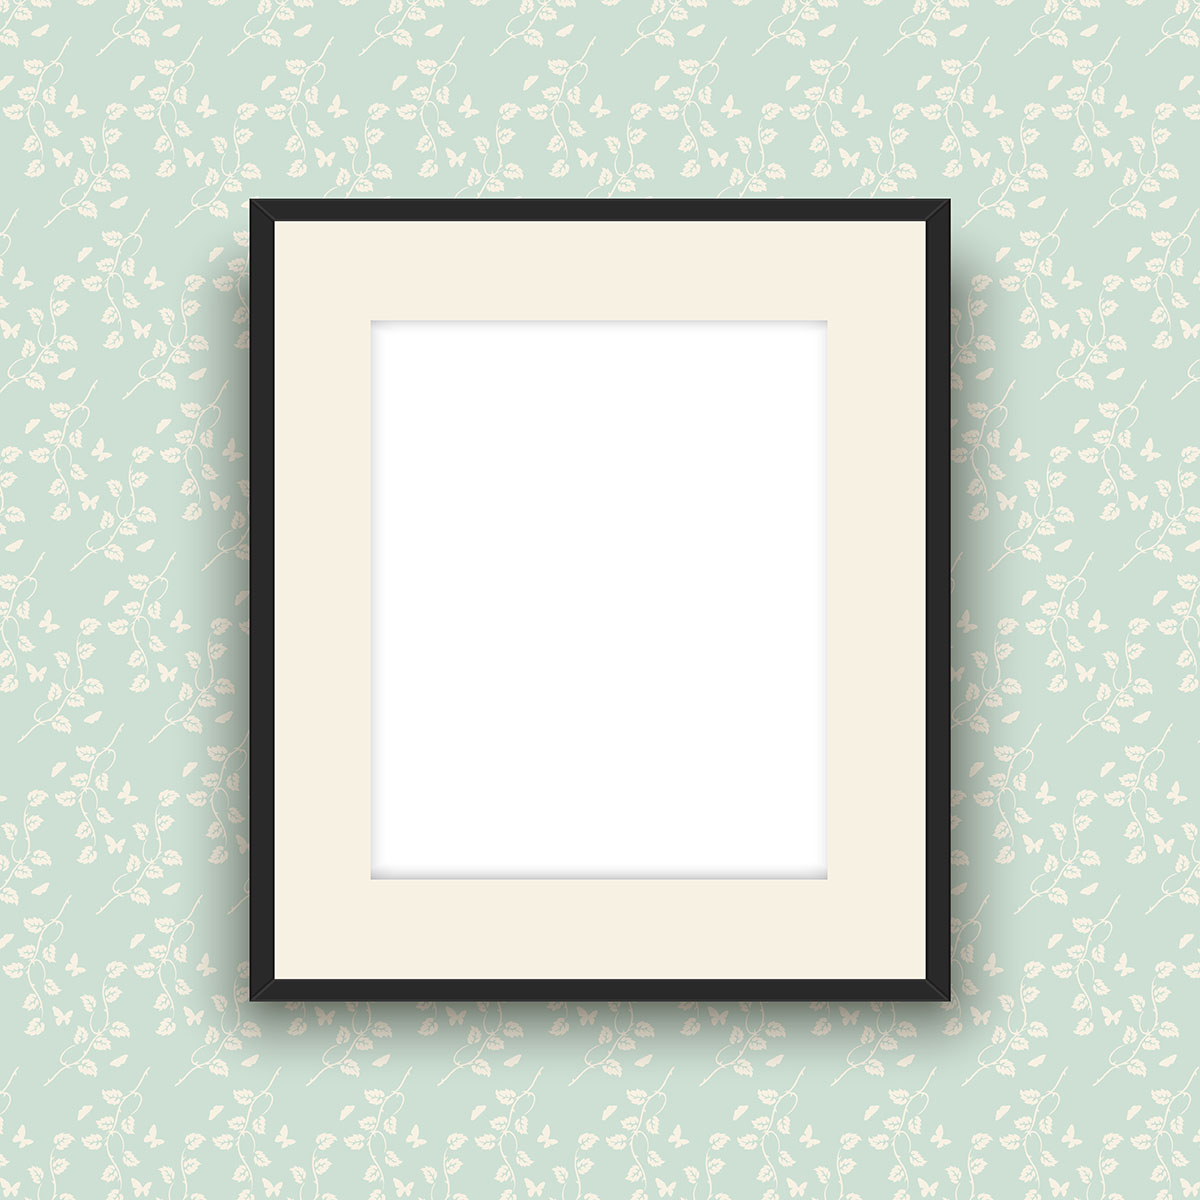 Blank picture frame on vintage style wallpaper download for Small vintage style picture frames